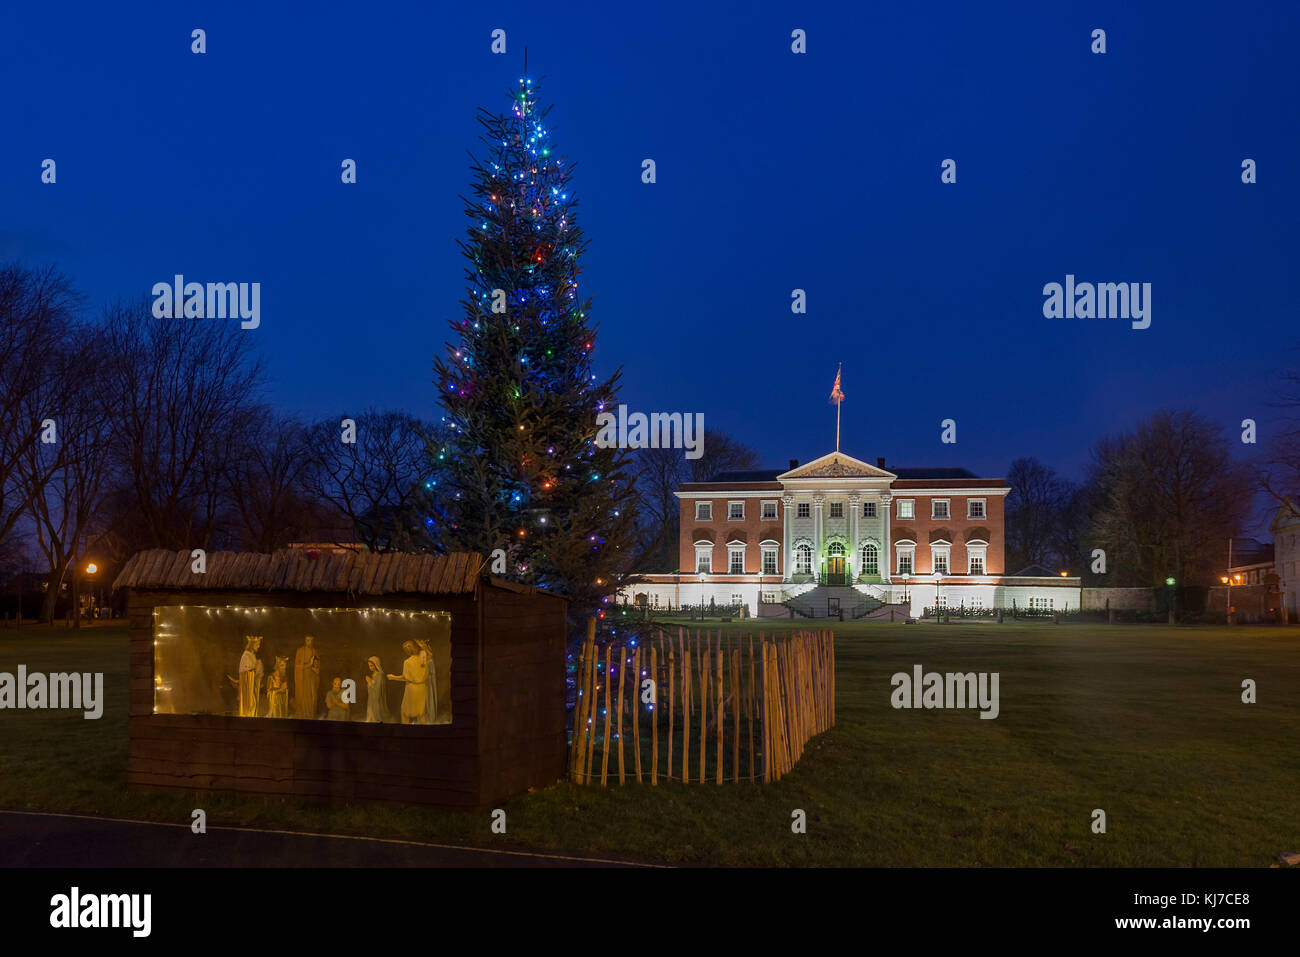 Warrinton town hall illumiaed in the evening with the christmas nativity and tree. - Stock Image